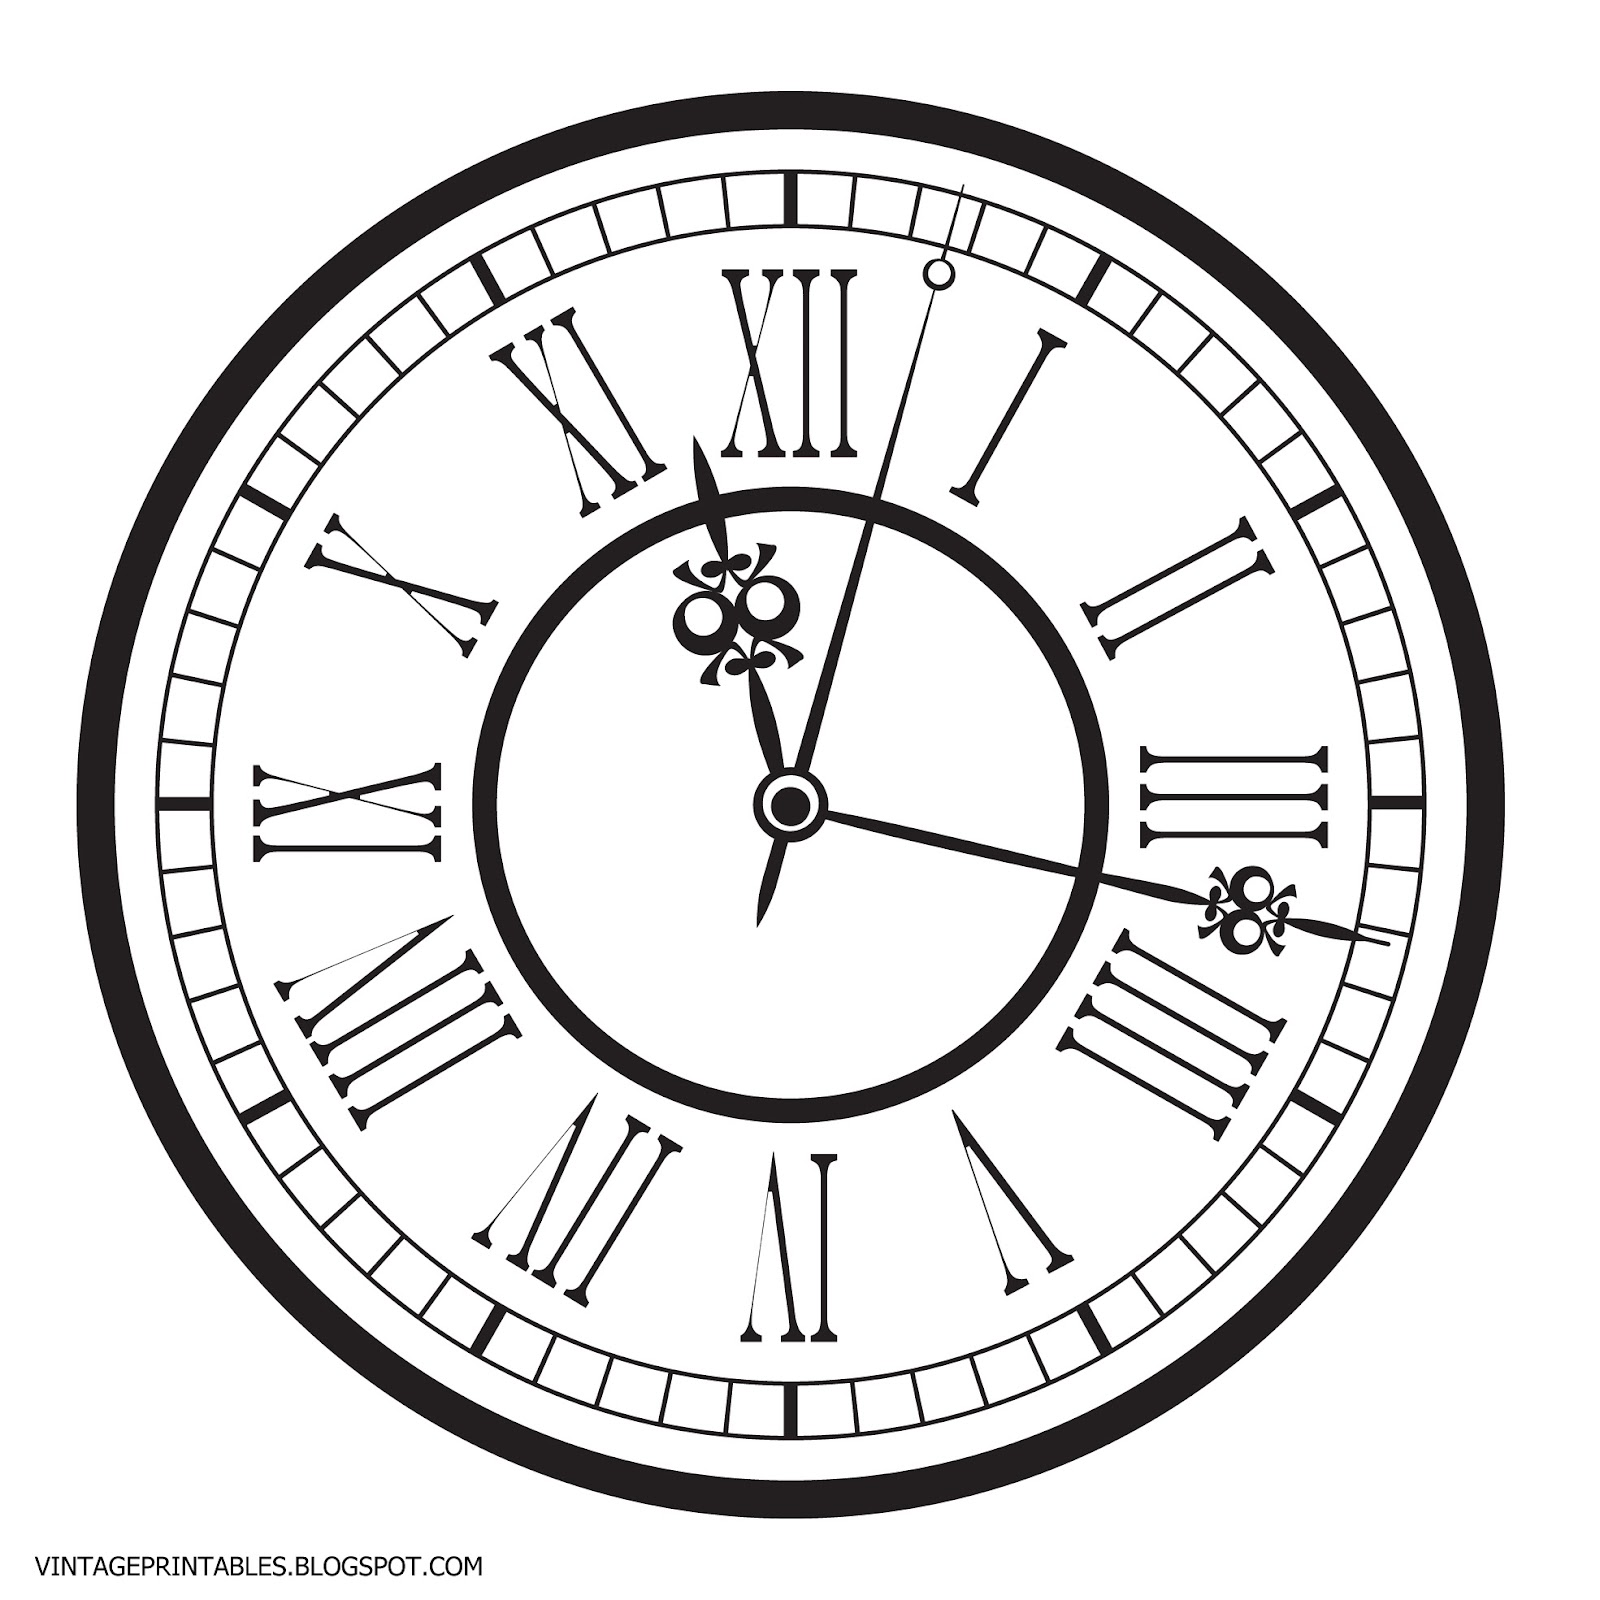 ... Free Antique Clock Clip Art. This Is My New Vintage Illustration And  Itu0027s Available In Two Options: One Is Flat Black And White Clock Silhouette  And ...